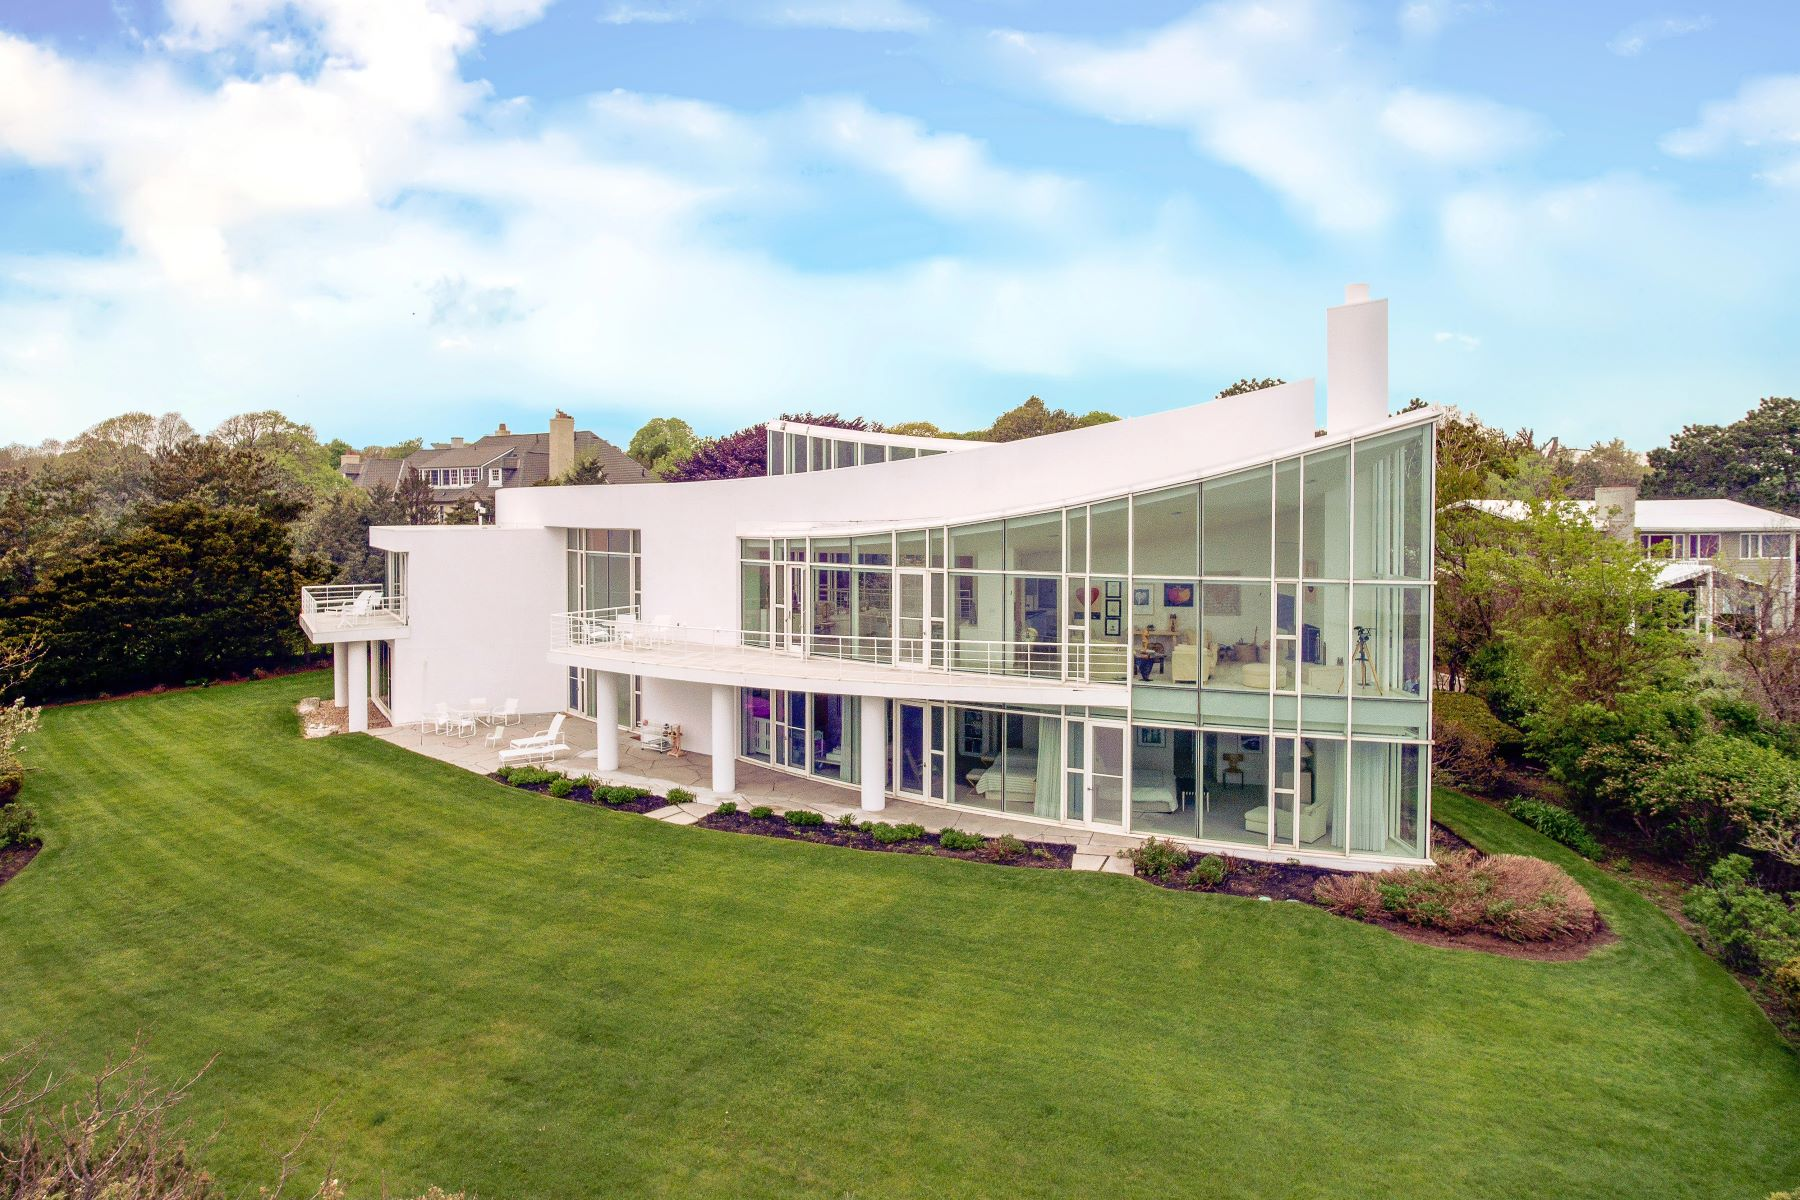 Single Family Homes for Active at Extraordinary Ocean Front Contemporary Home 45 Little's Point Swampscott, Massachusetts 01907 United States